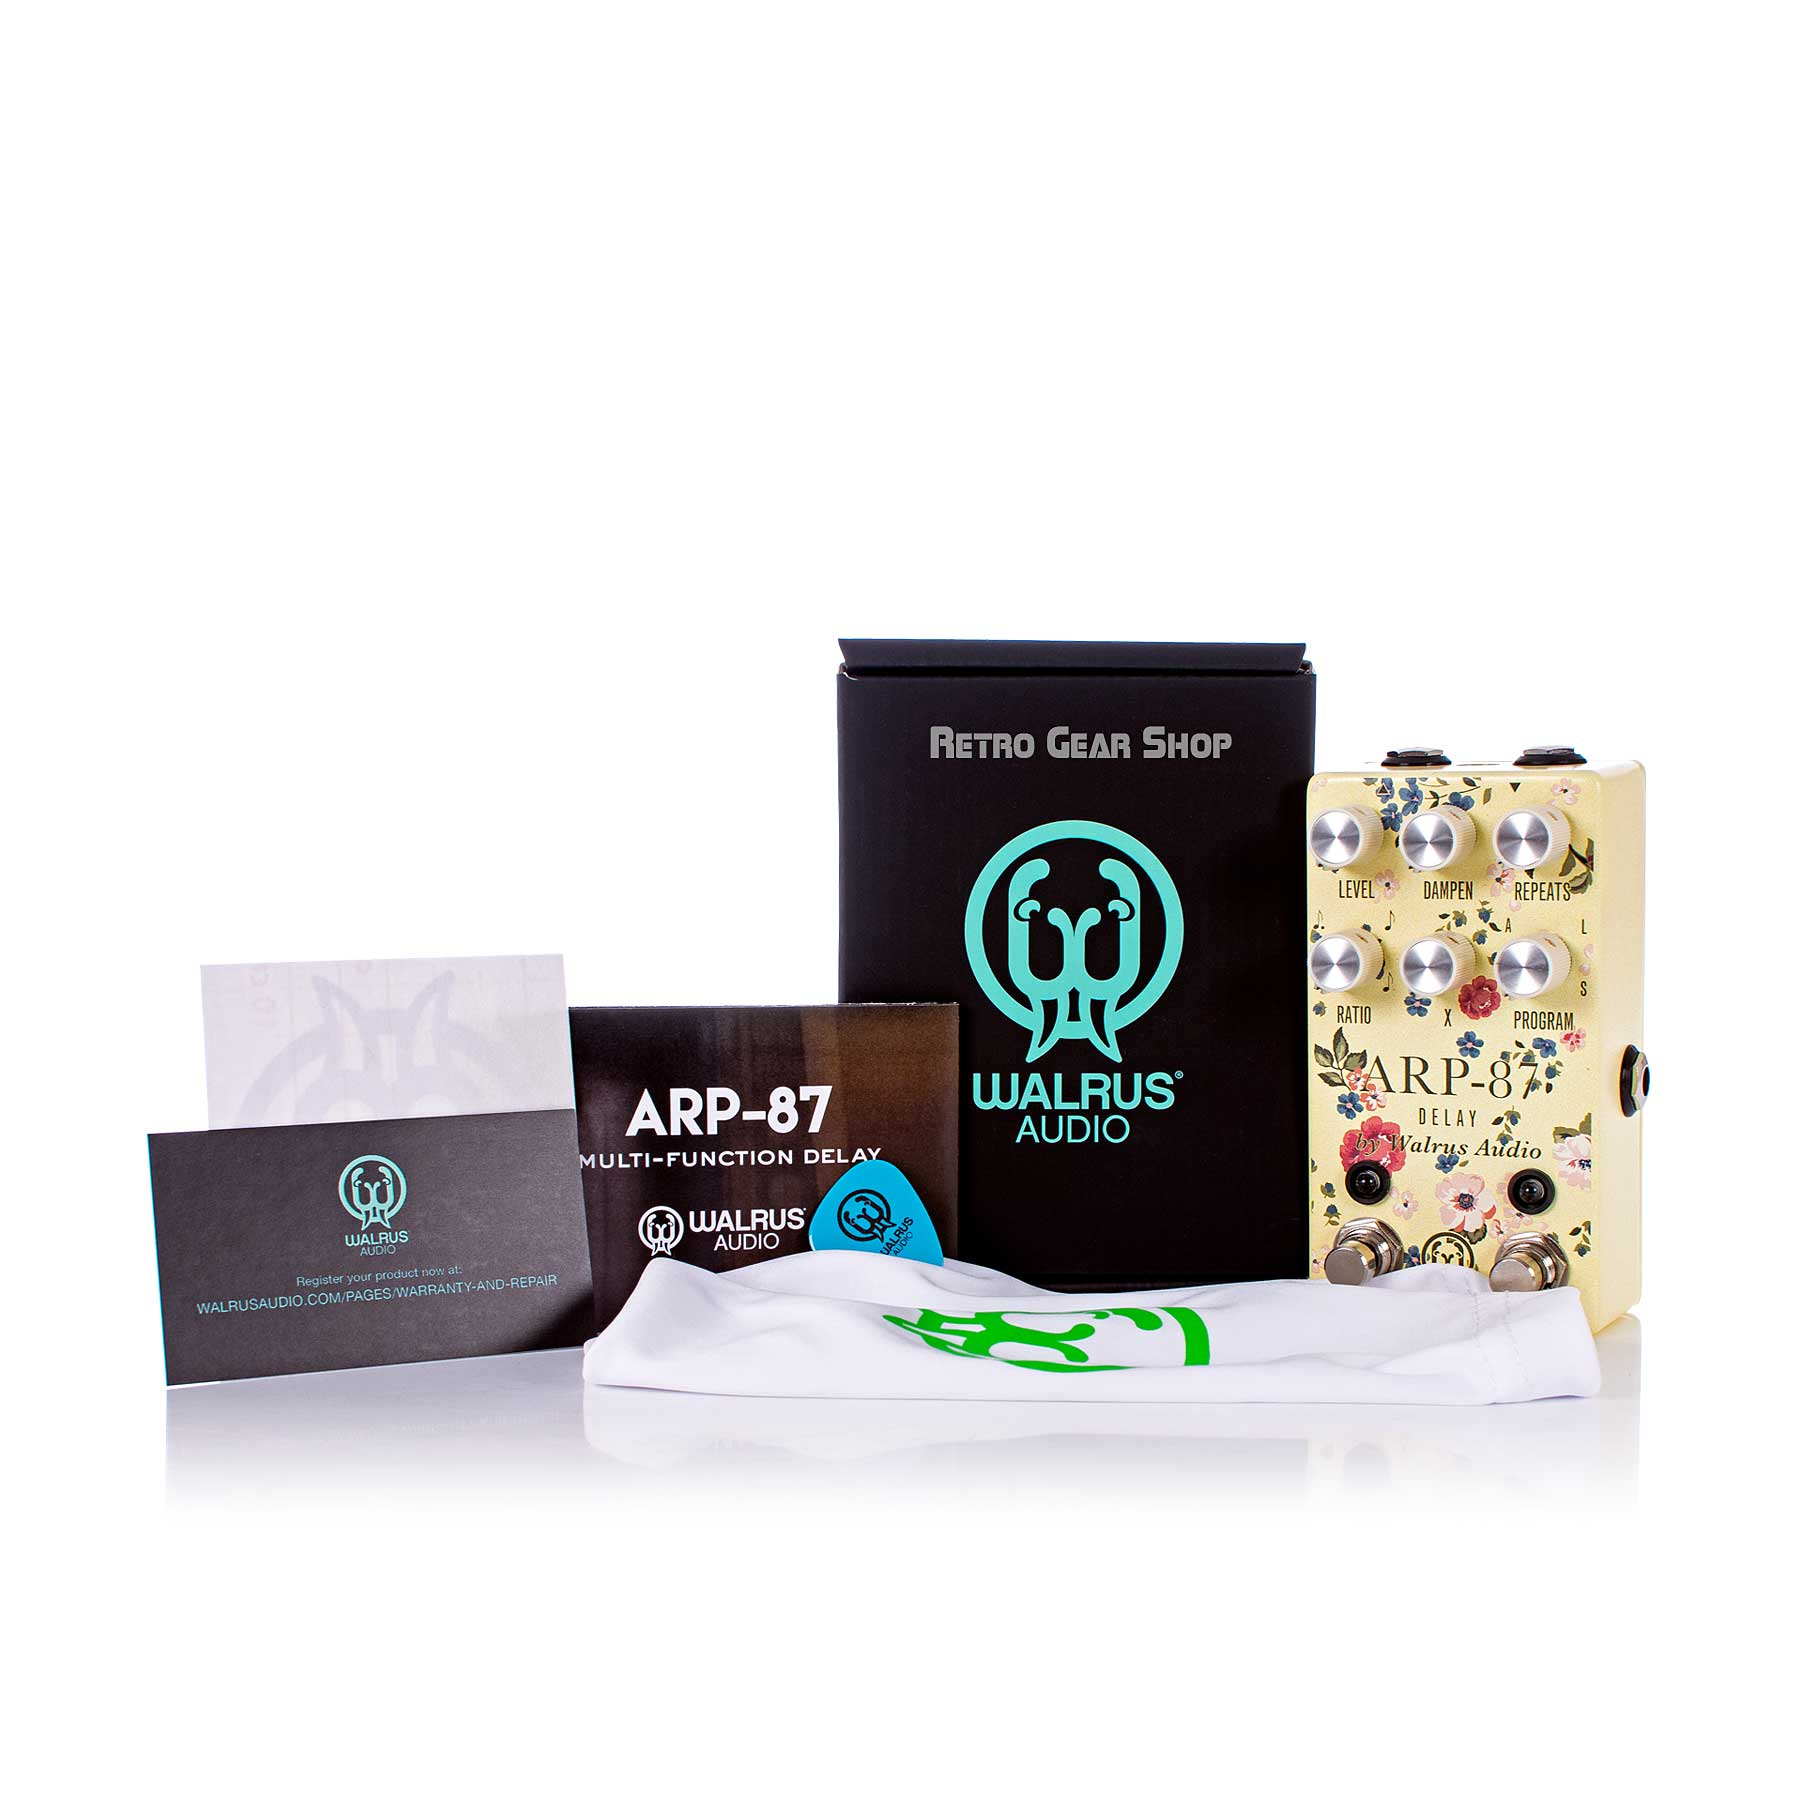 Walrus Audio ARP-87 Limited Edition Floral Series Box Manual Extras